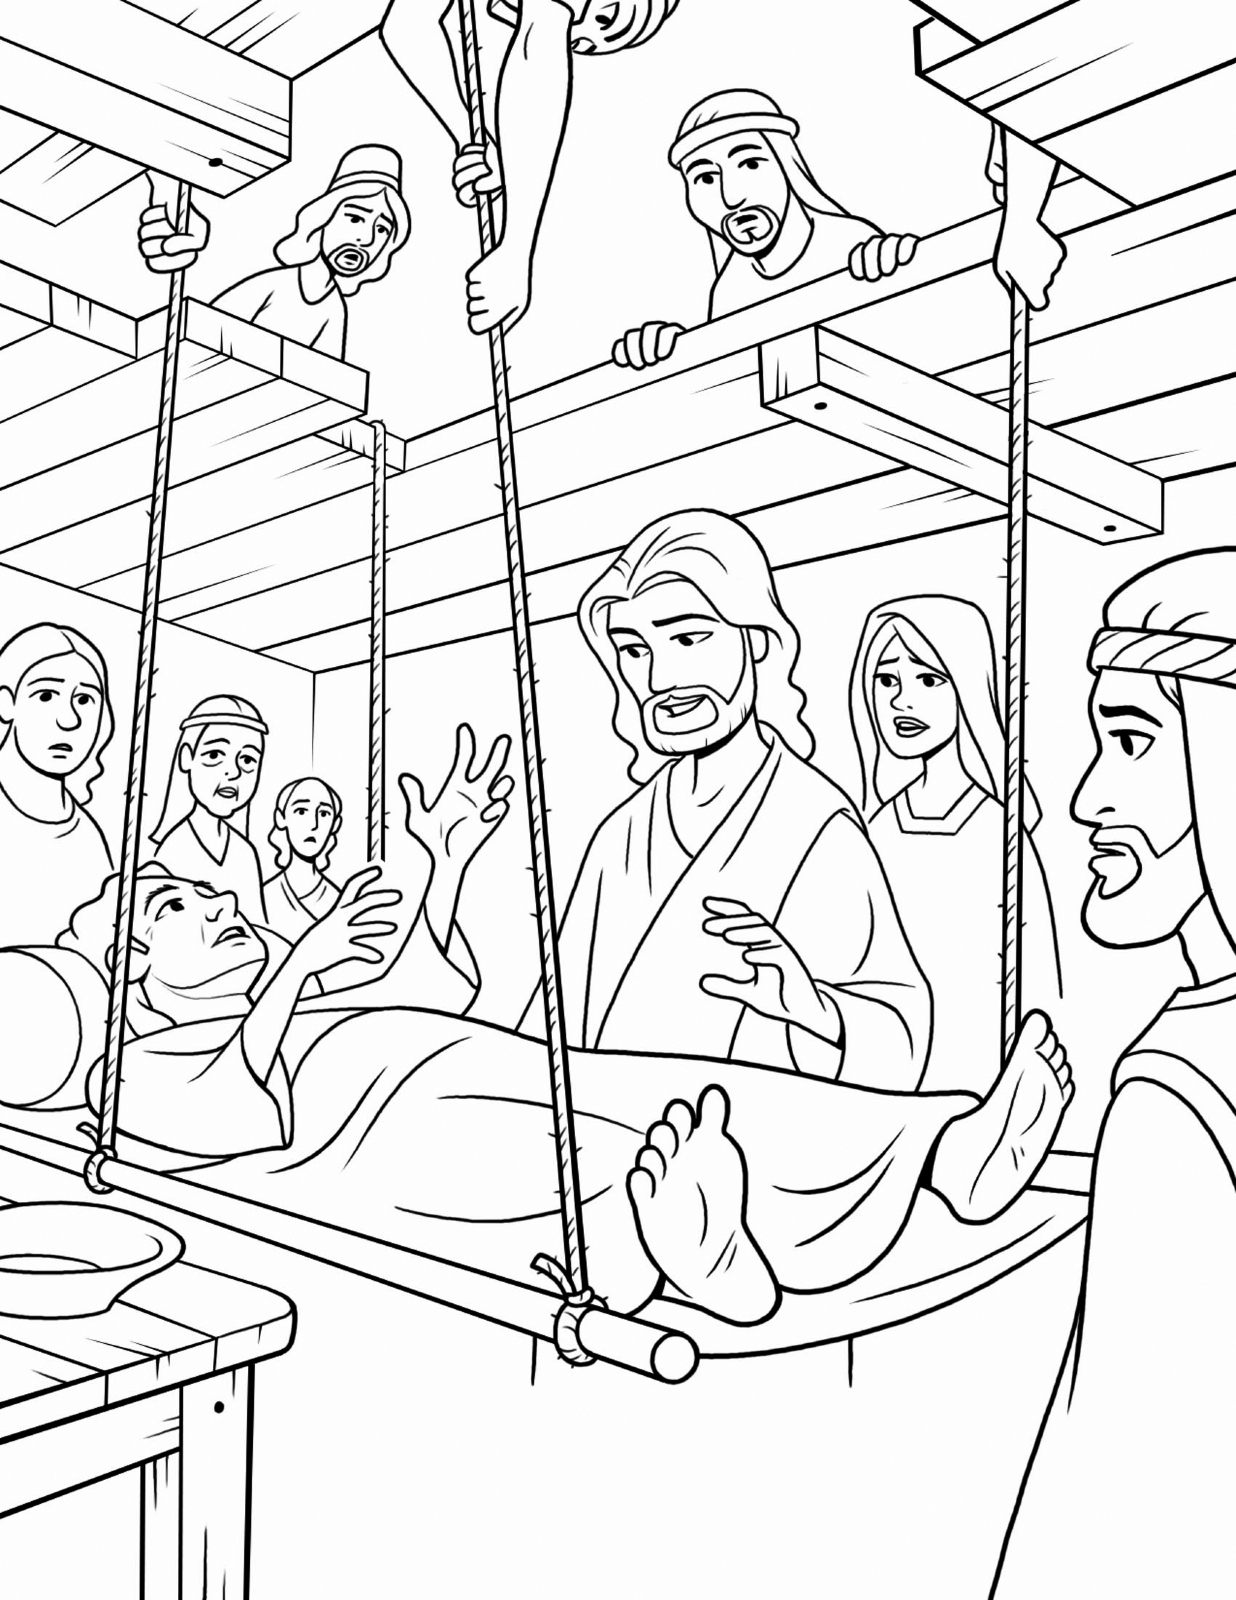 jesus miracles coloring pages | Jesus Healing the Sick